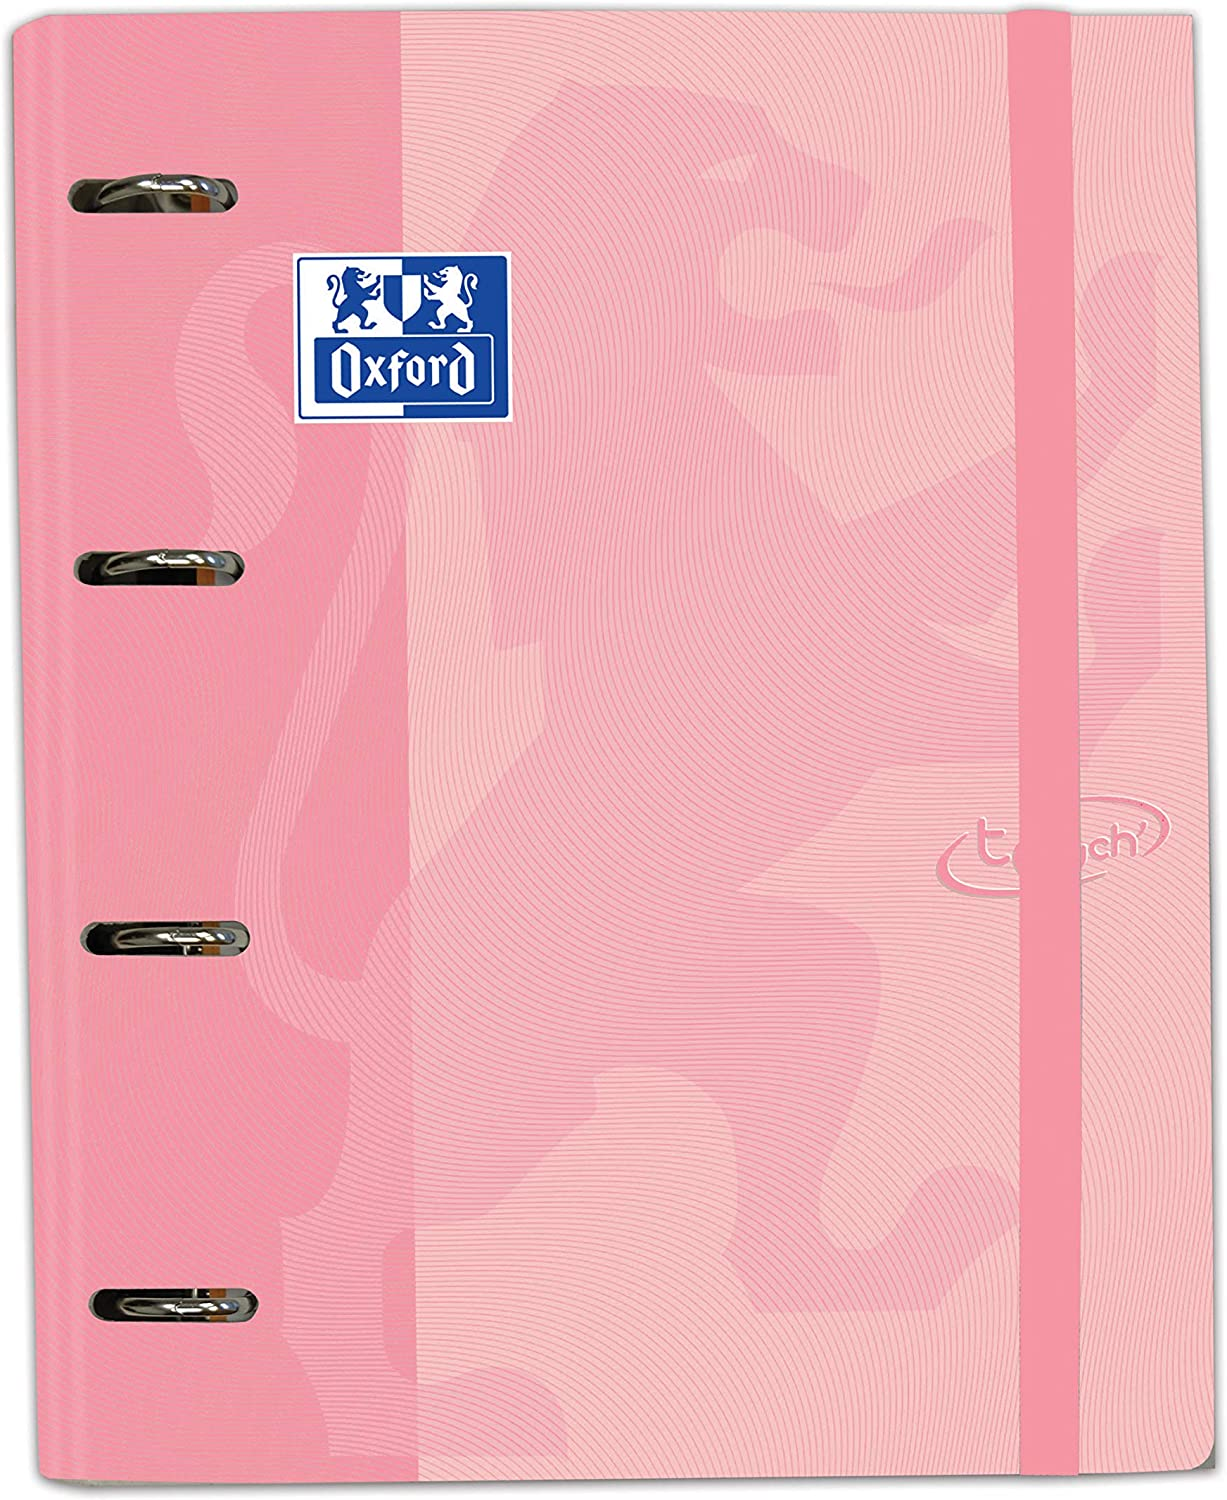 Carpeta con recambio Europeanbinder A4+ Oxford Touch color Flamingo Pastel